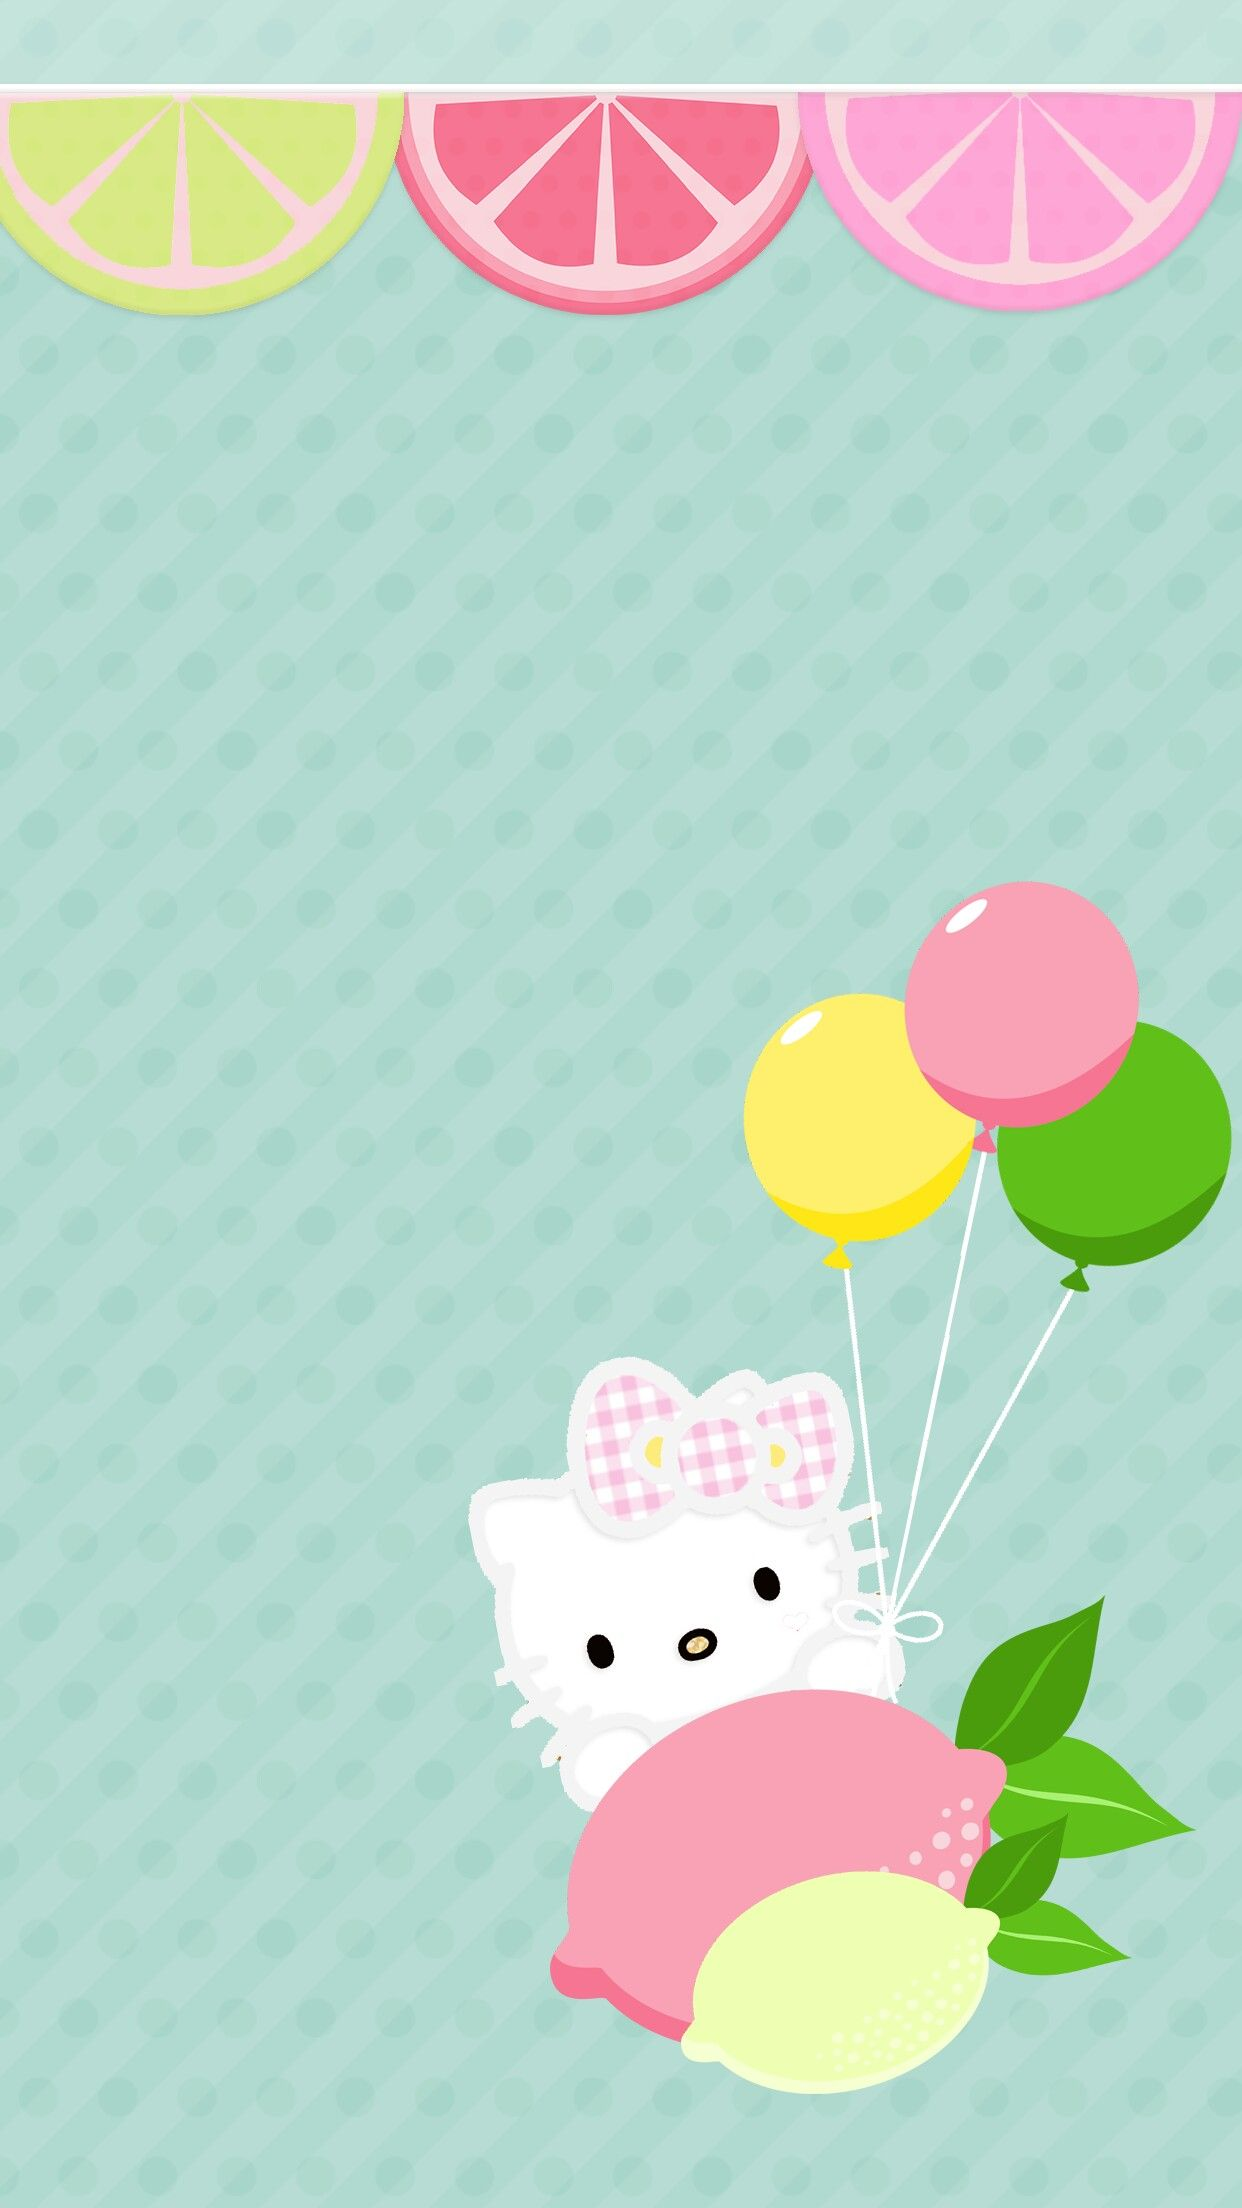 Iphone Wall Hk Tjn Hello Kitty Wallpaper Hello Kit Kitty Wallpaper